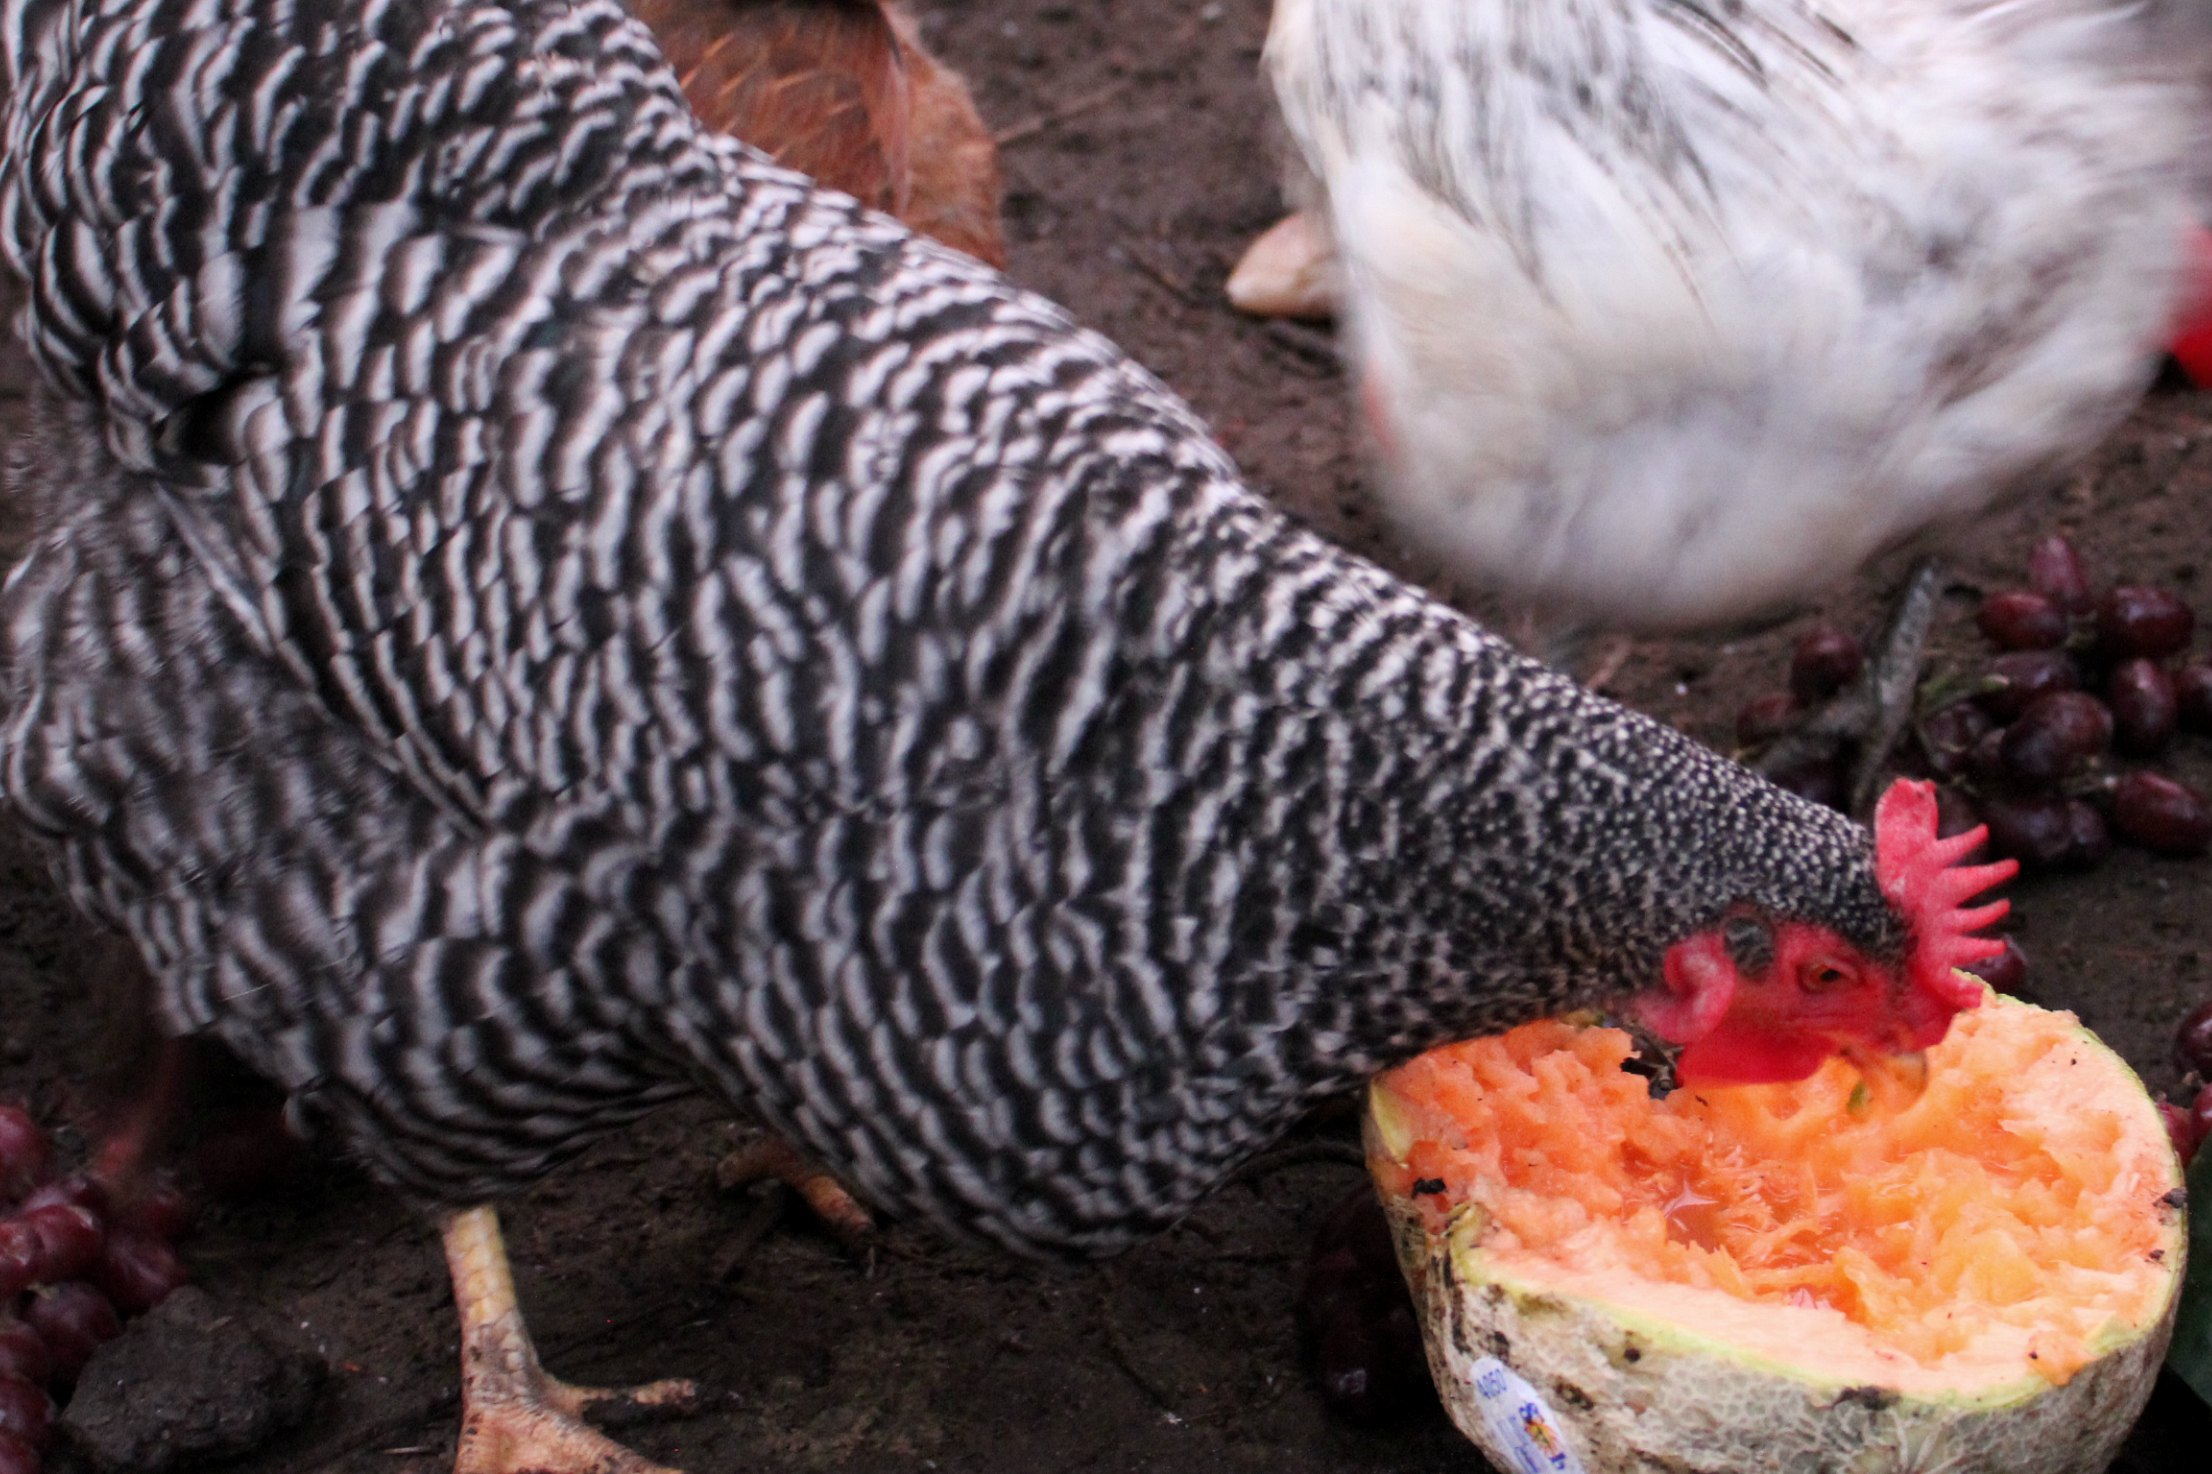 Food Waste In America – Chickens Love Cantaloupes